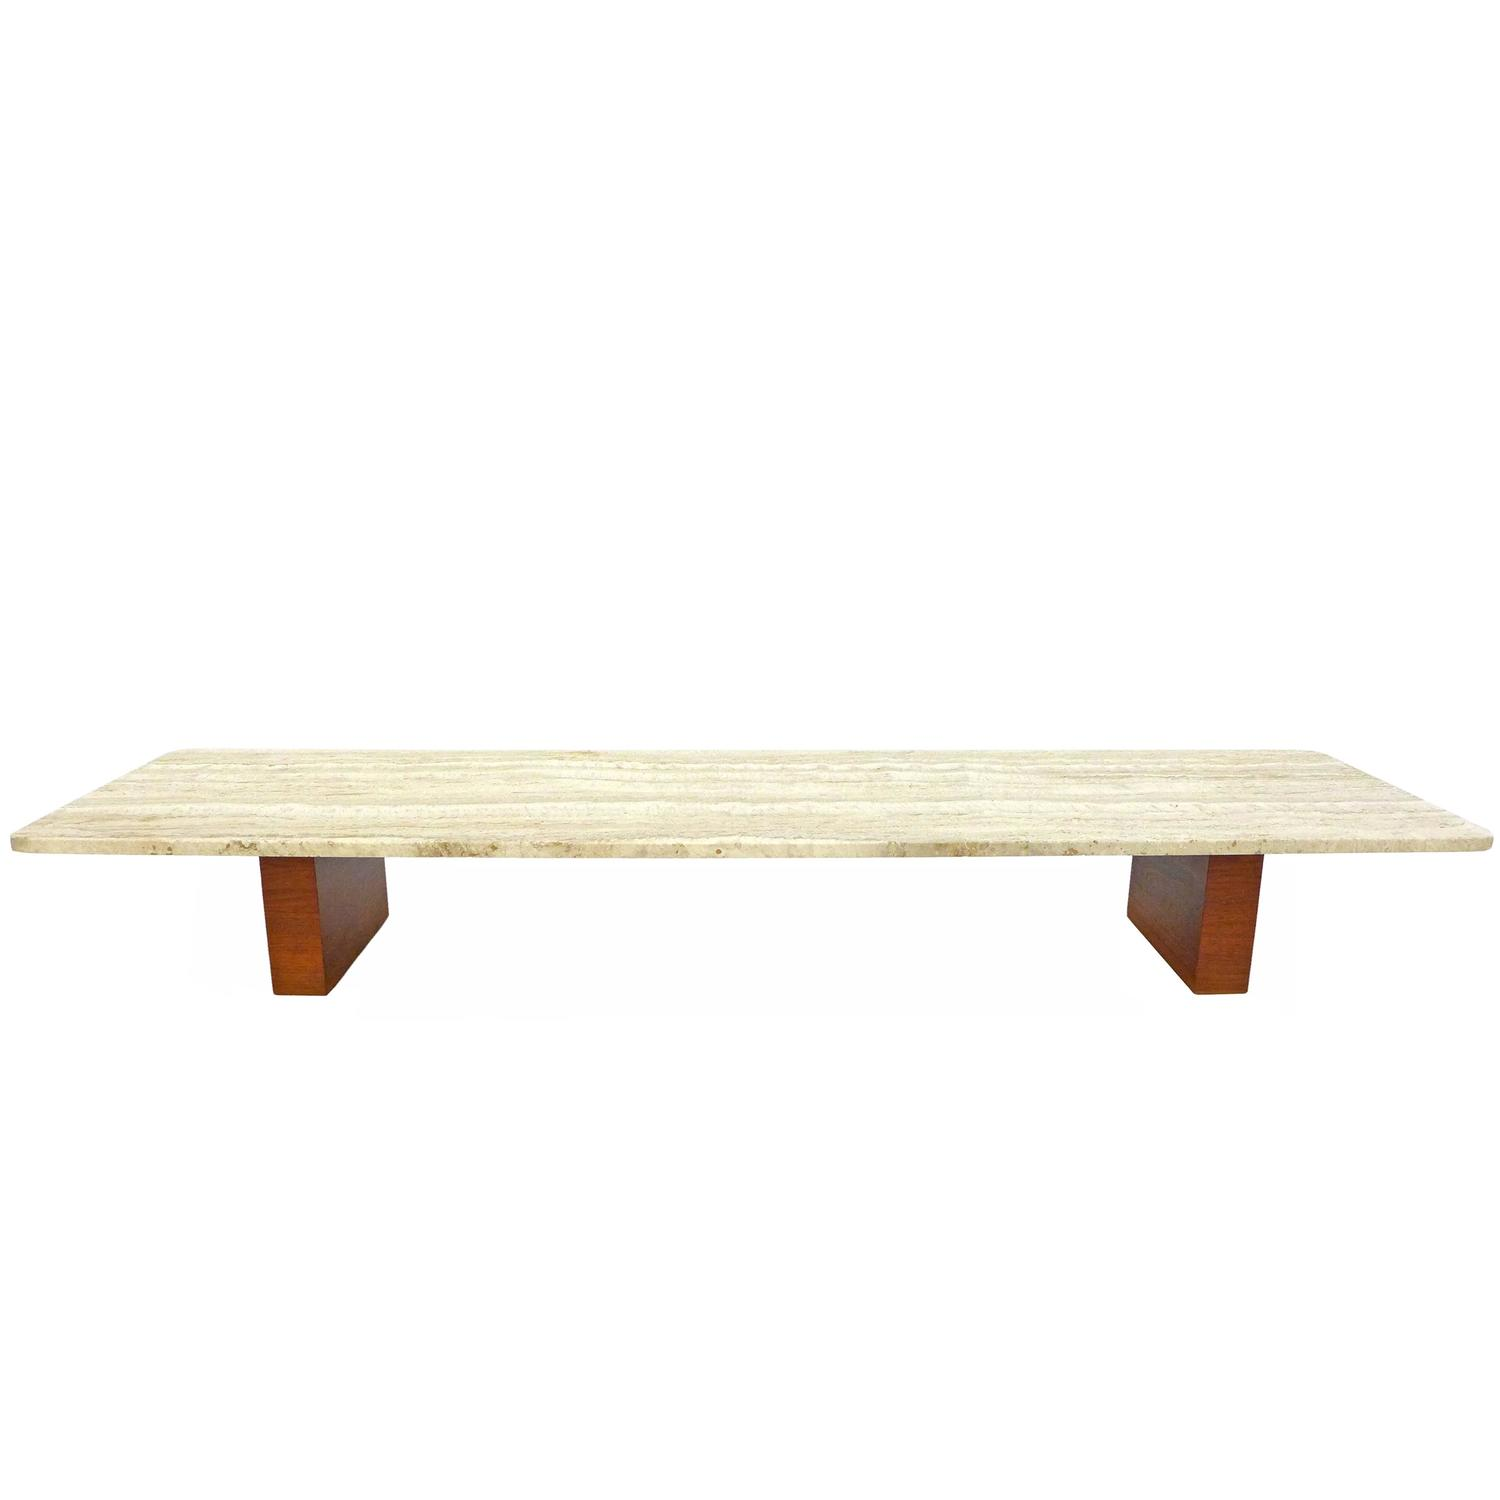 Low travertine and wood coffee table at 1stdibs Low wooden coffee table